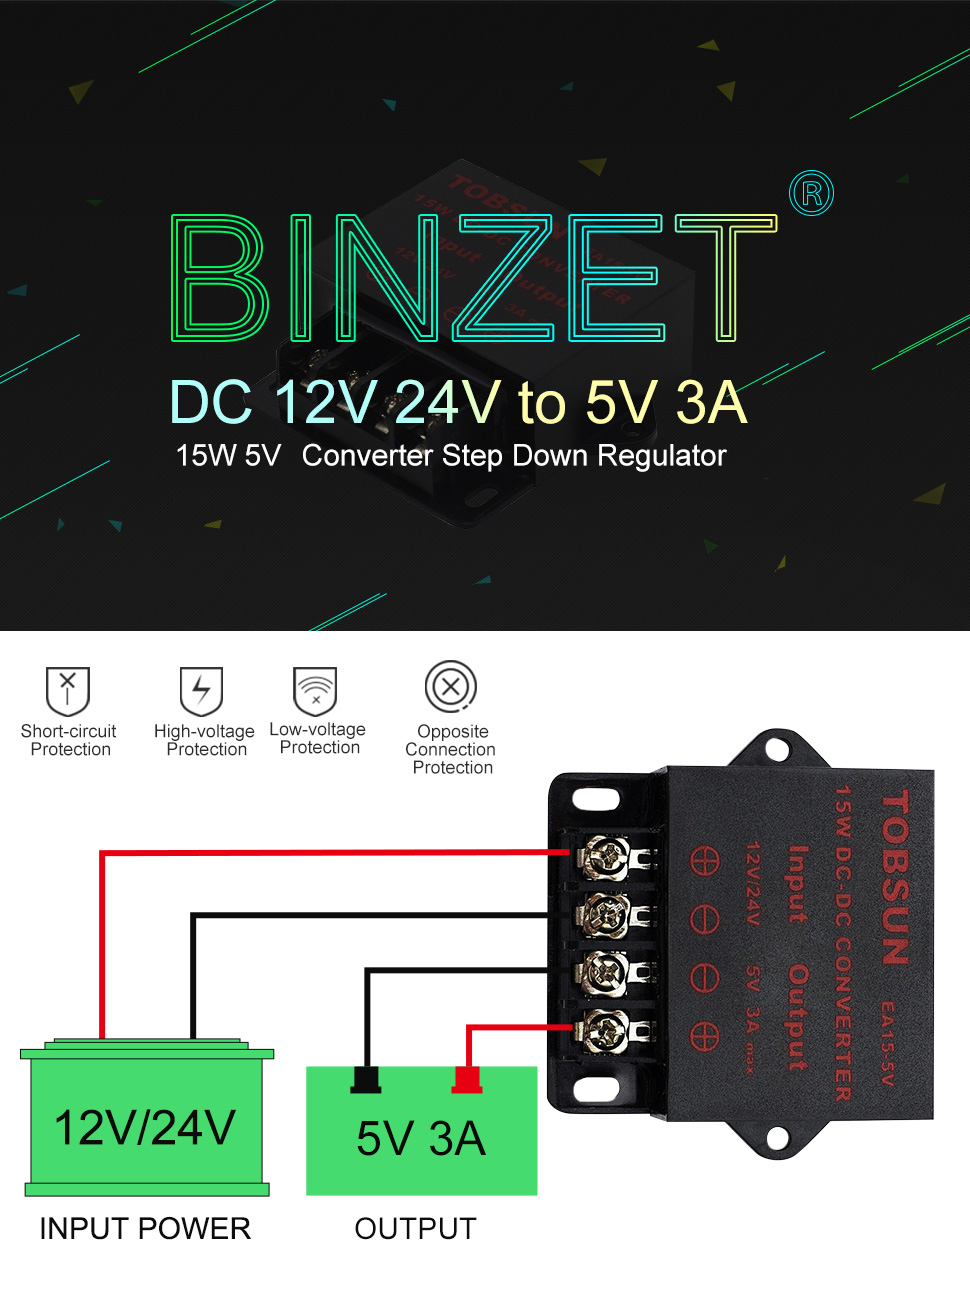 Binzet Dc Converter Step Down Regulator 5v Regulated Related Circuits 18v Or 25v To Power Supply Circuit With 3a 15w Over Voltage Protection Current Overheat Short And Automatic